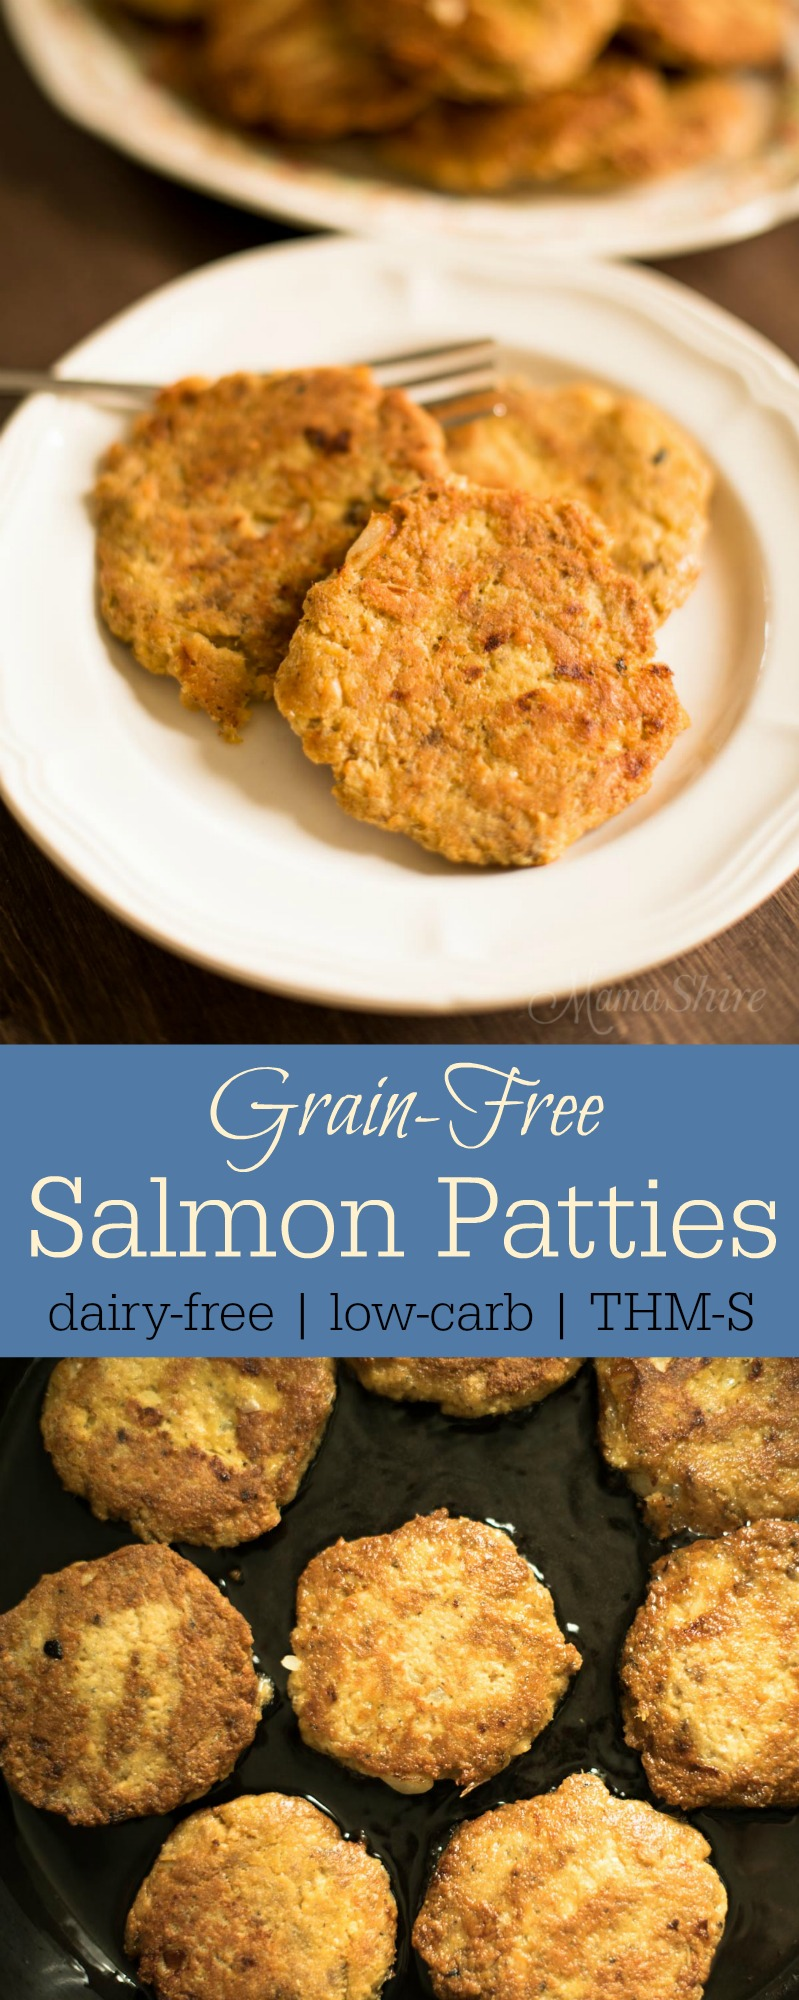 Grain-free Salmon Patties - Dairy-free, Low-carb, THM-S.